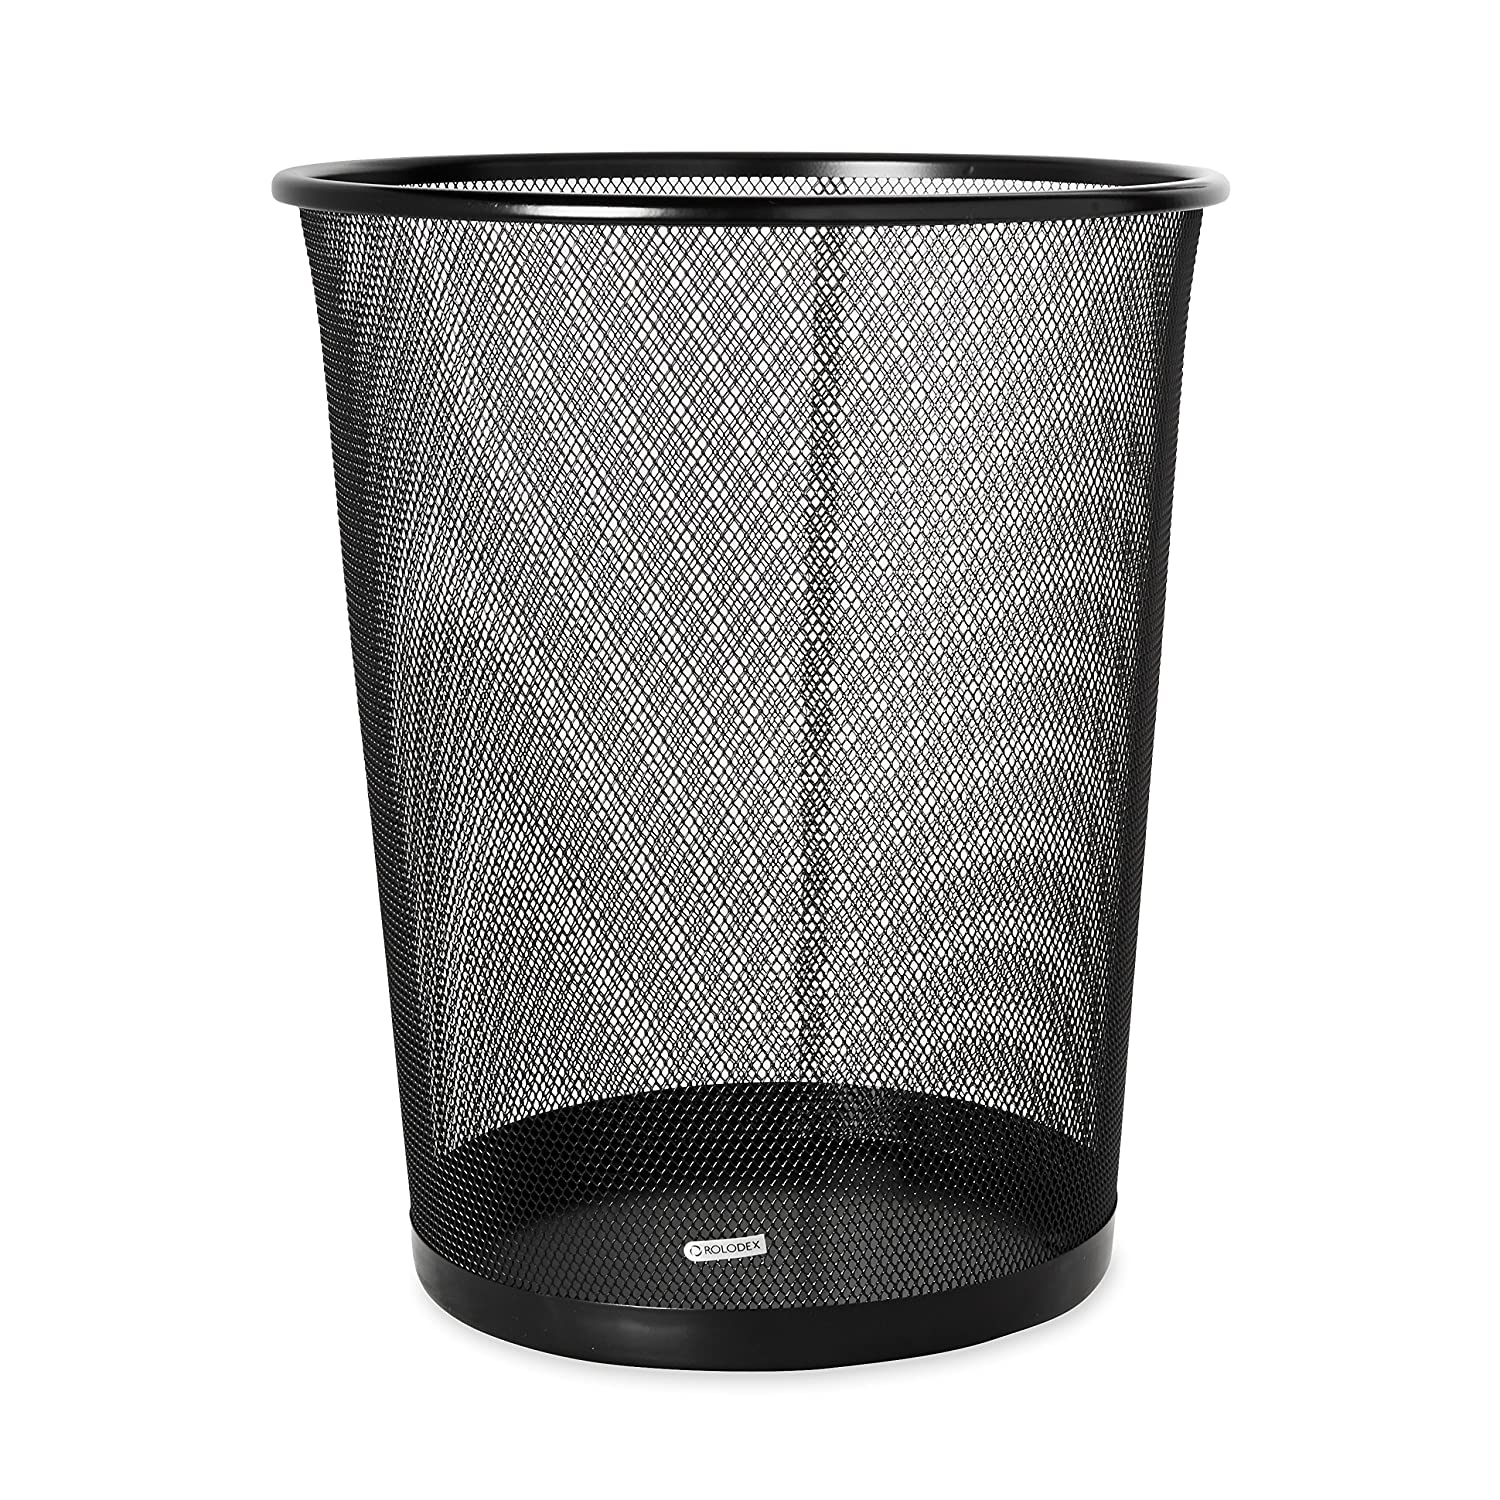 Beau Amazon.com: Rolodex Mesh Round Wastebasket, 11 1/2 Diameter X 14 1/4 H,  Black (22351): Office Products